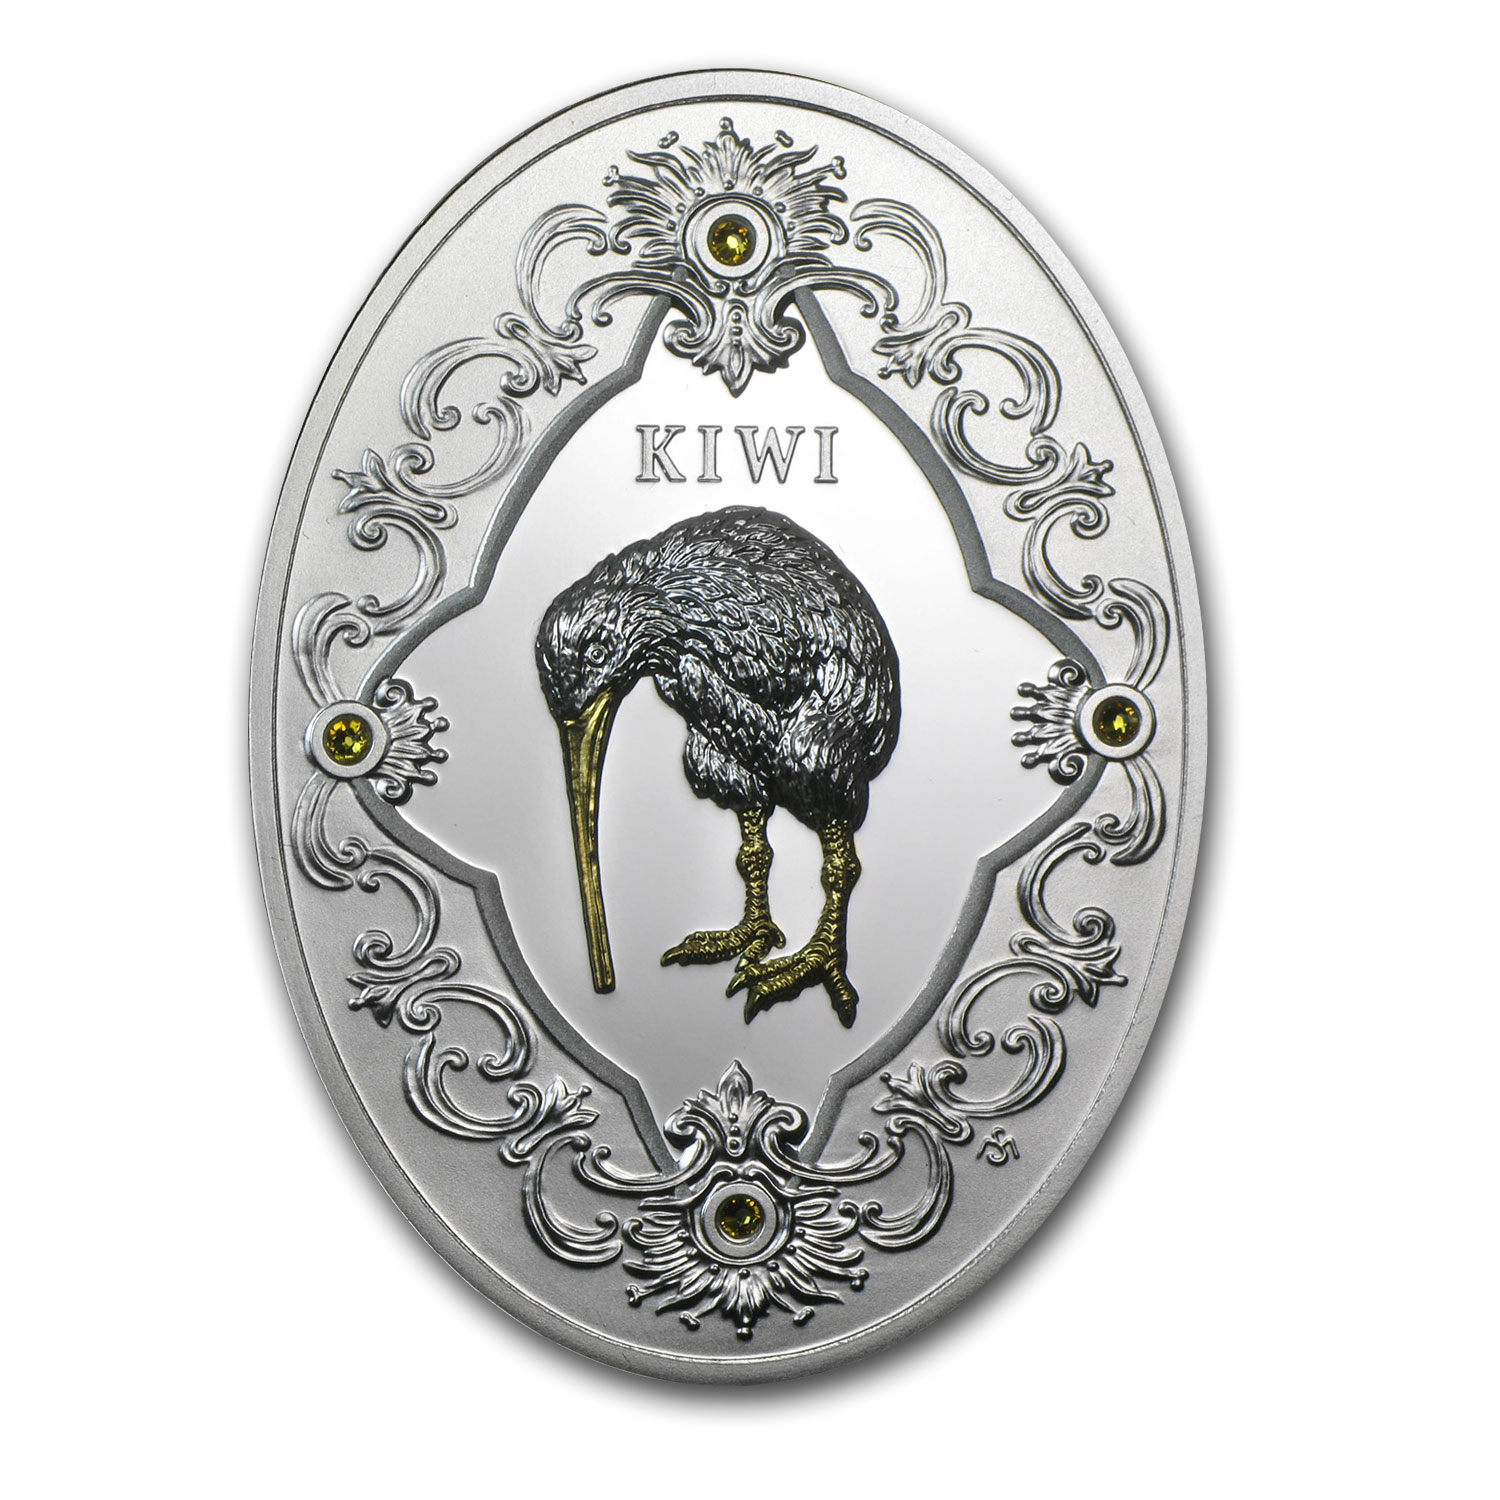 2014 Niue Proof Silver Royal Faberge Gift Kiwi